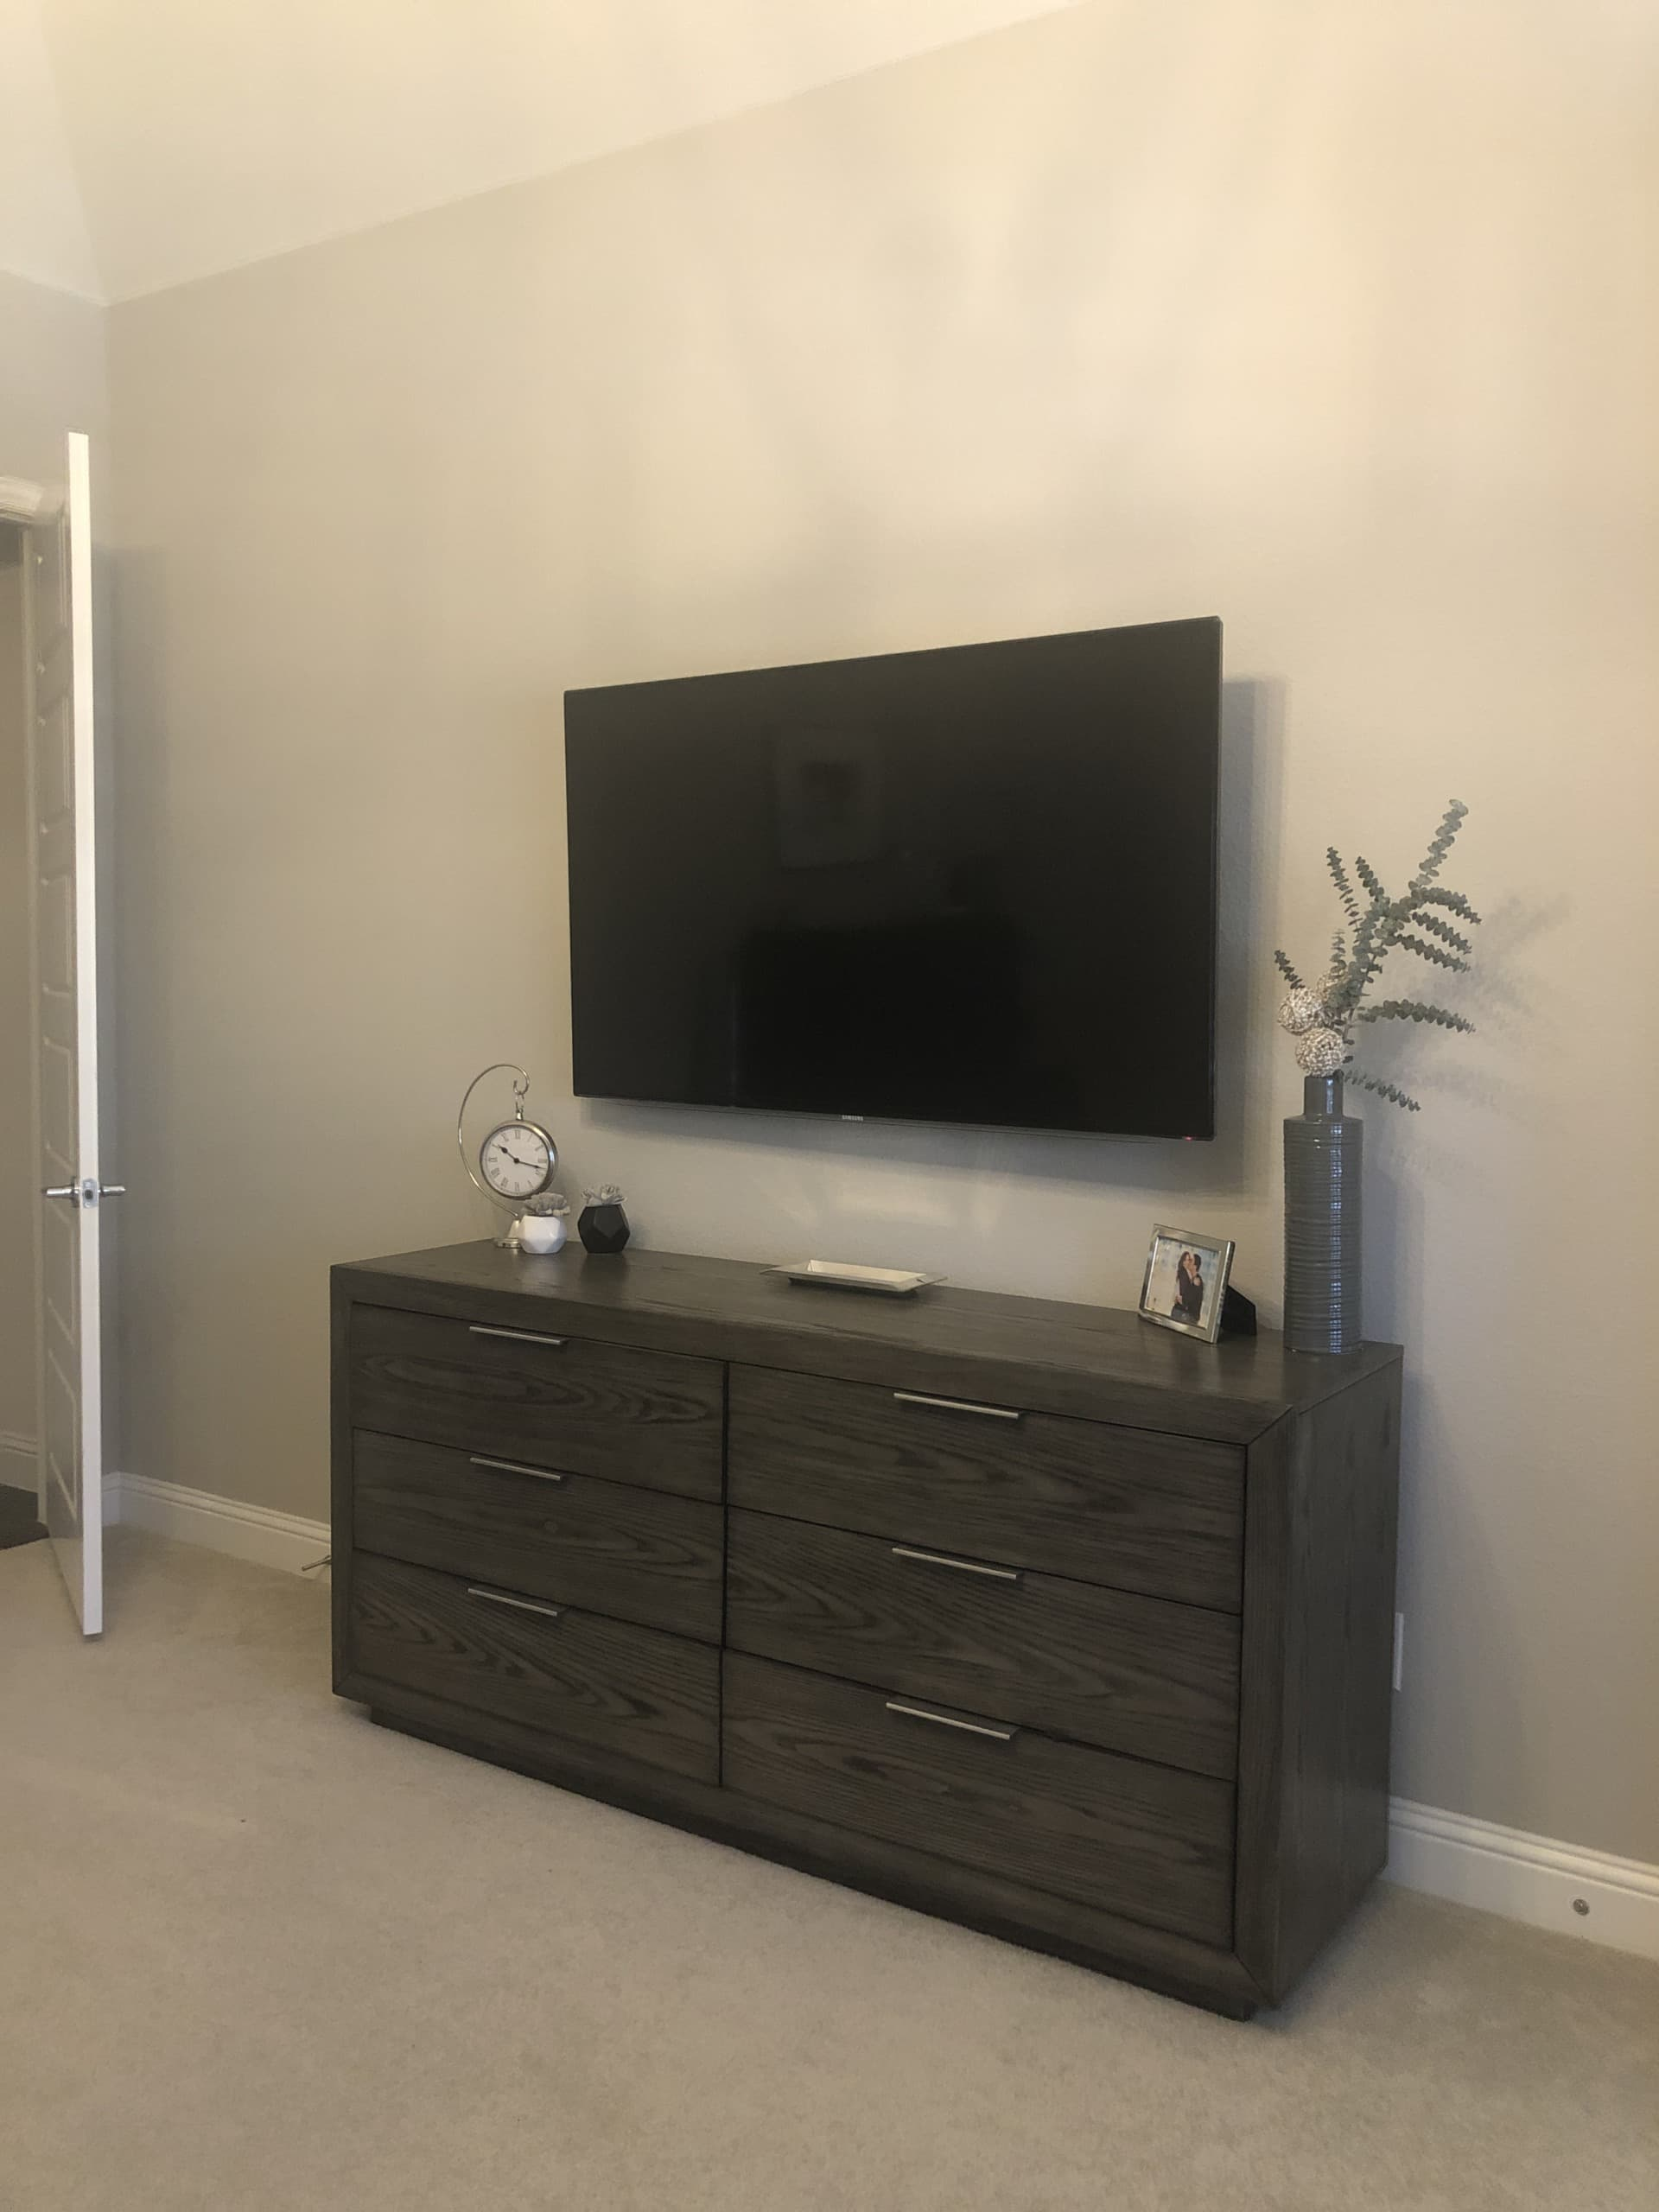 TV wall for reader sos